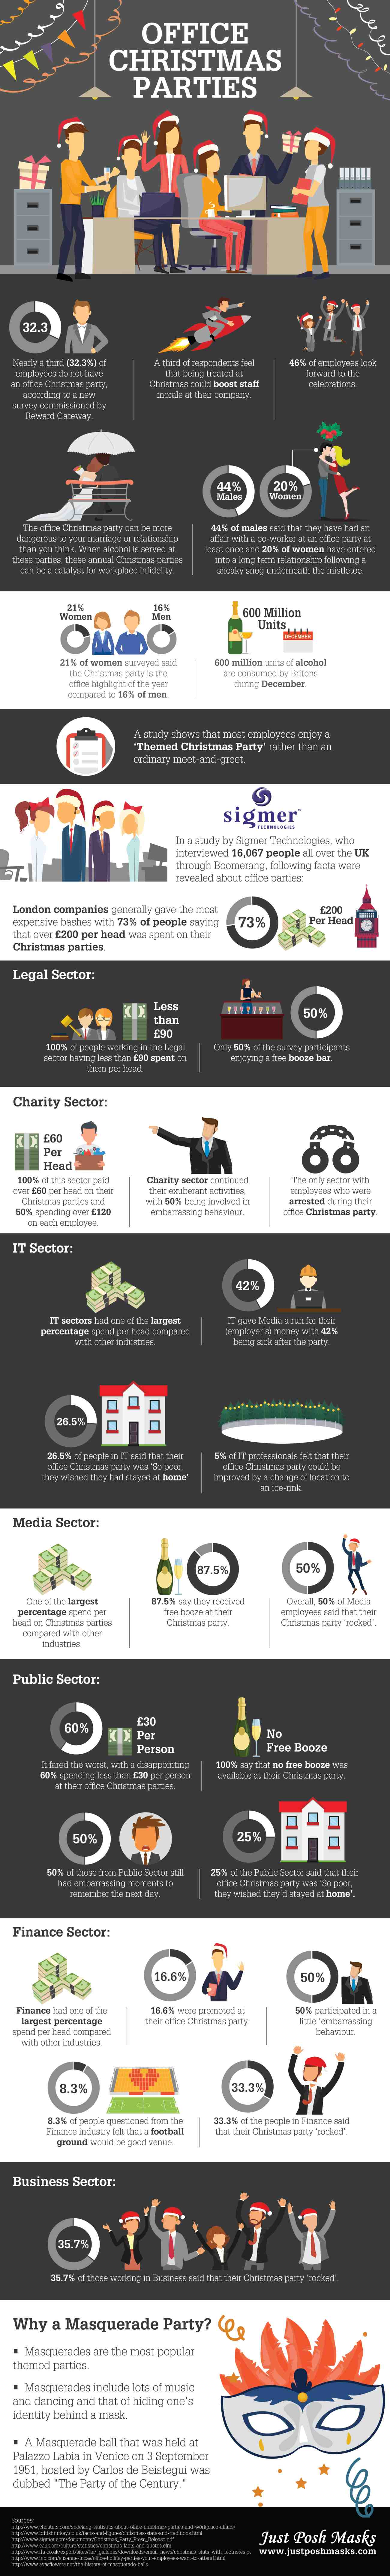 Infographic on Office Christmas Party